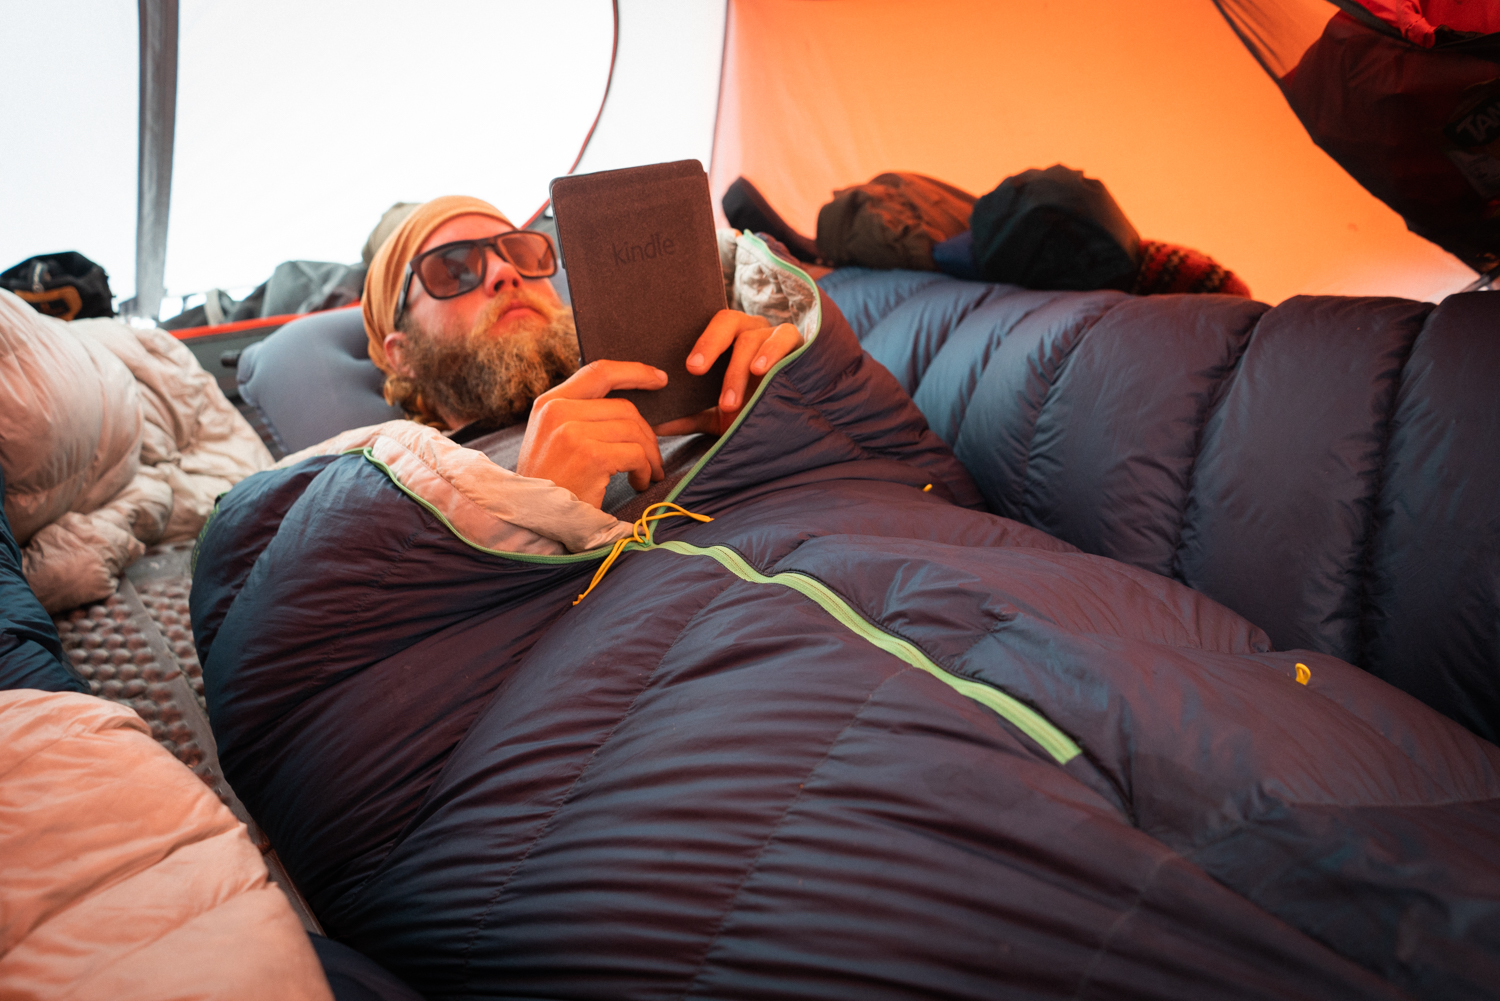 ultralight camping pillow and sleeping bag